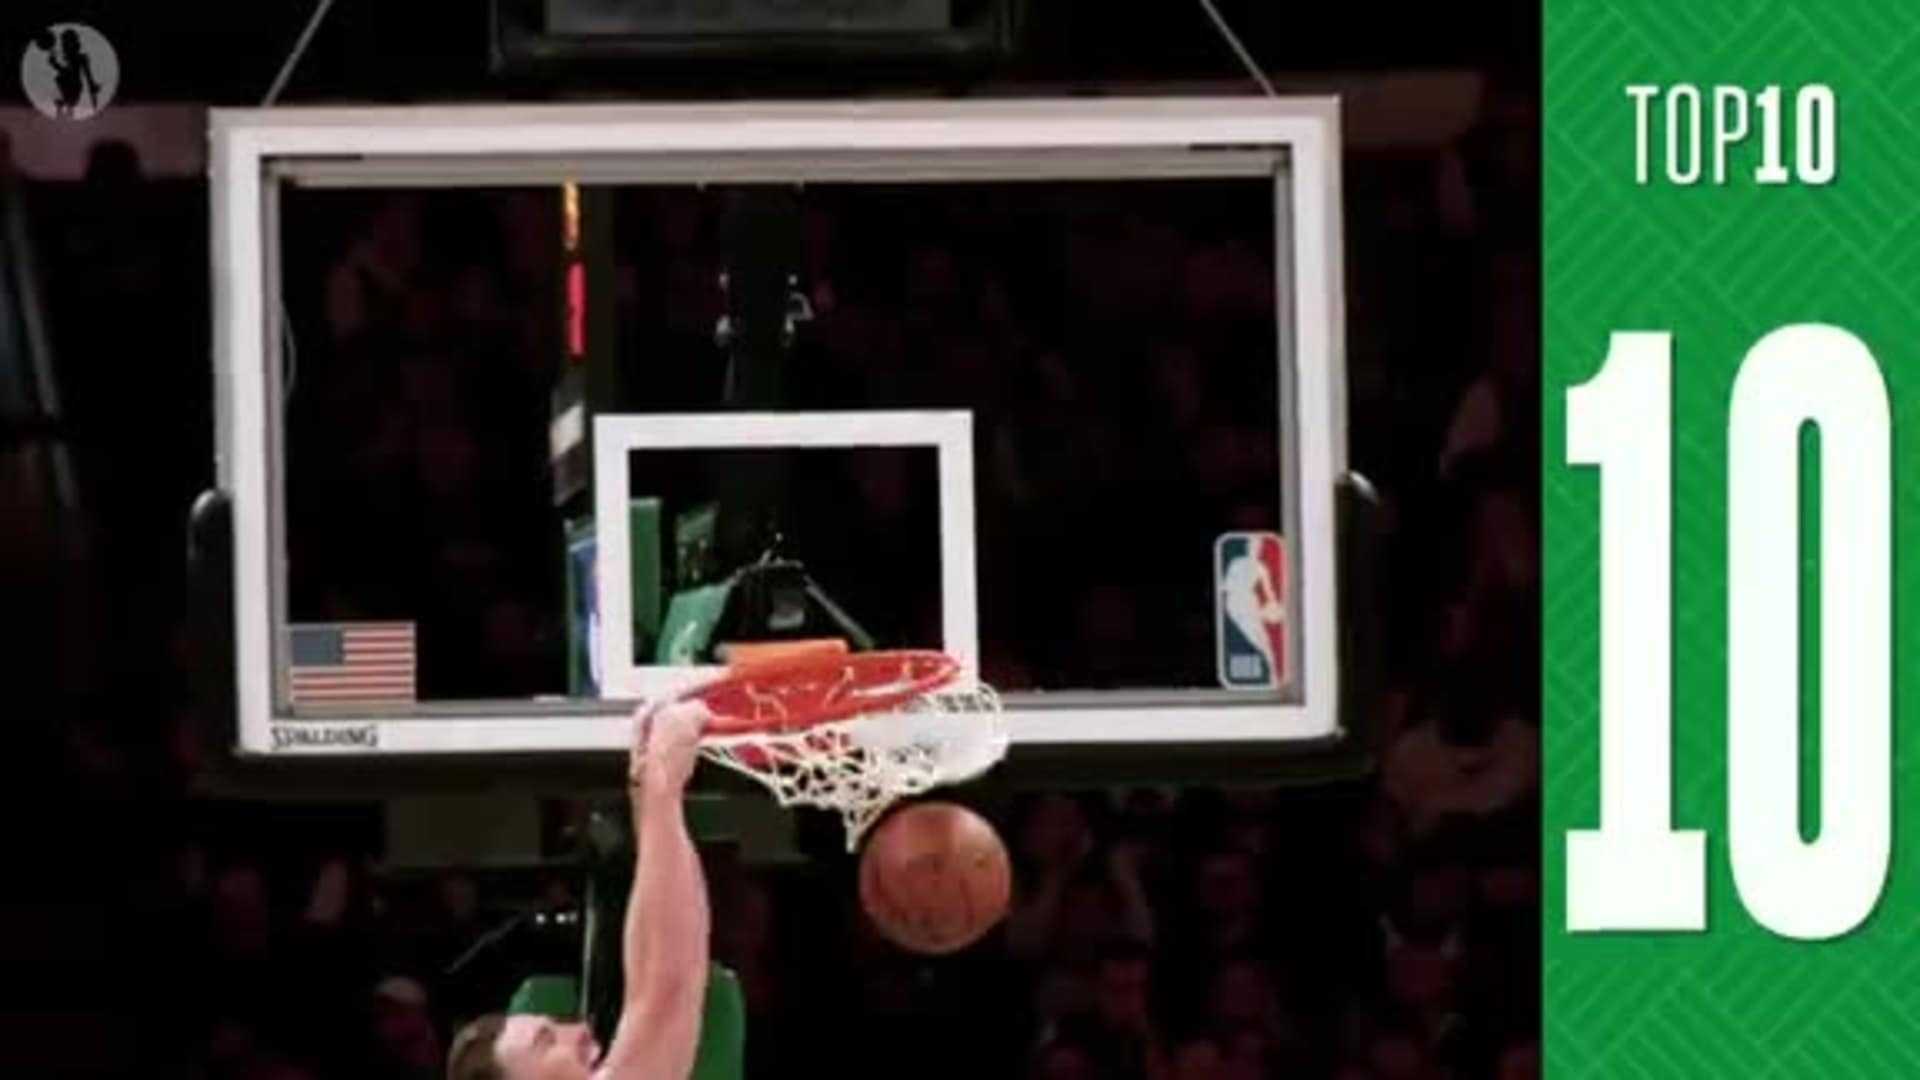 Top 10 Dunks: Part 1